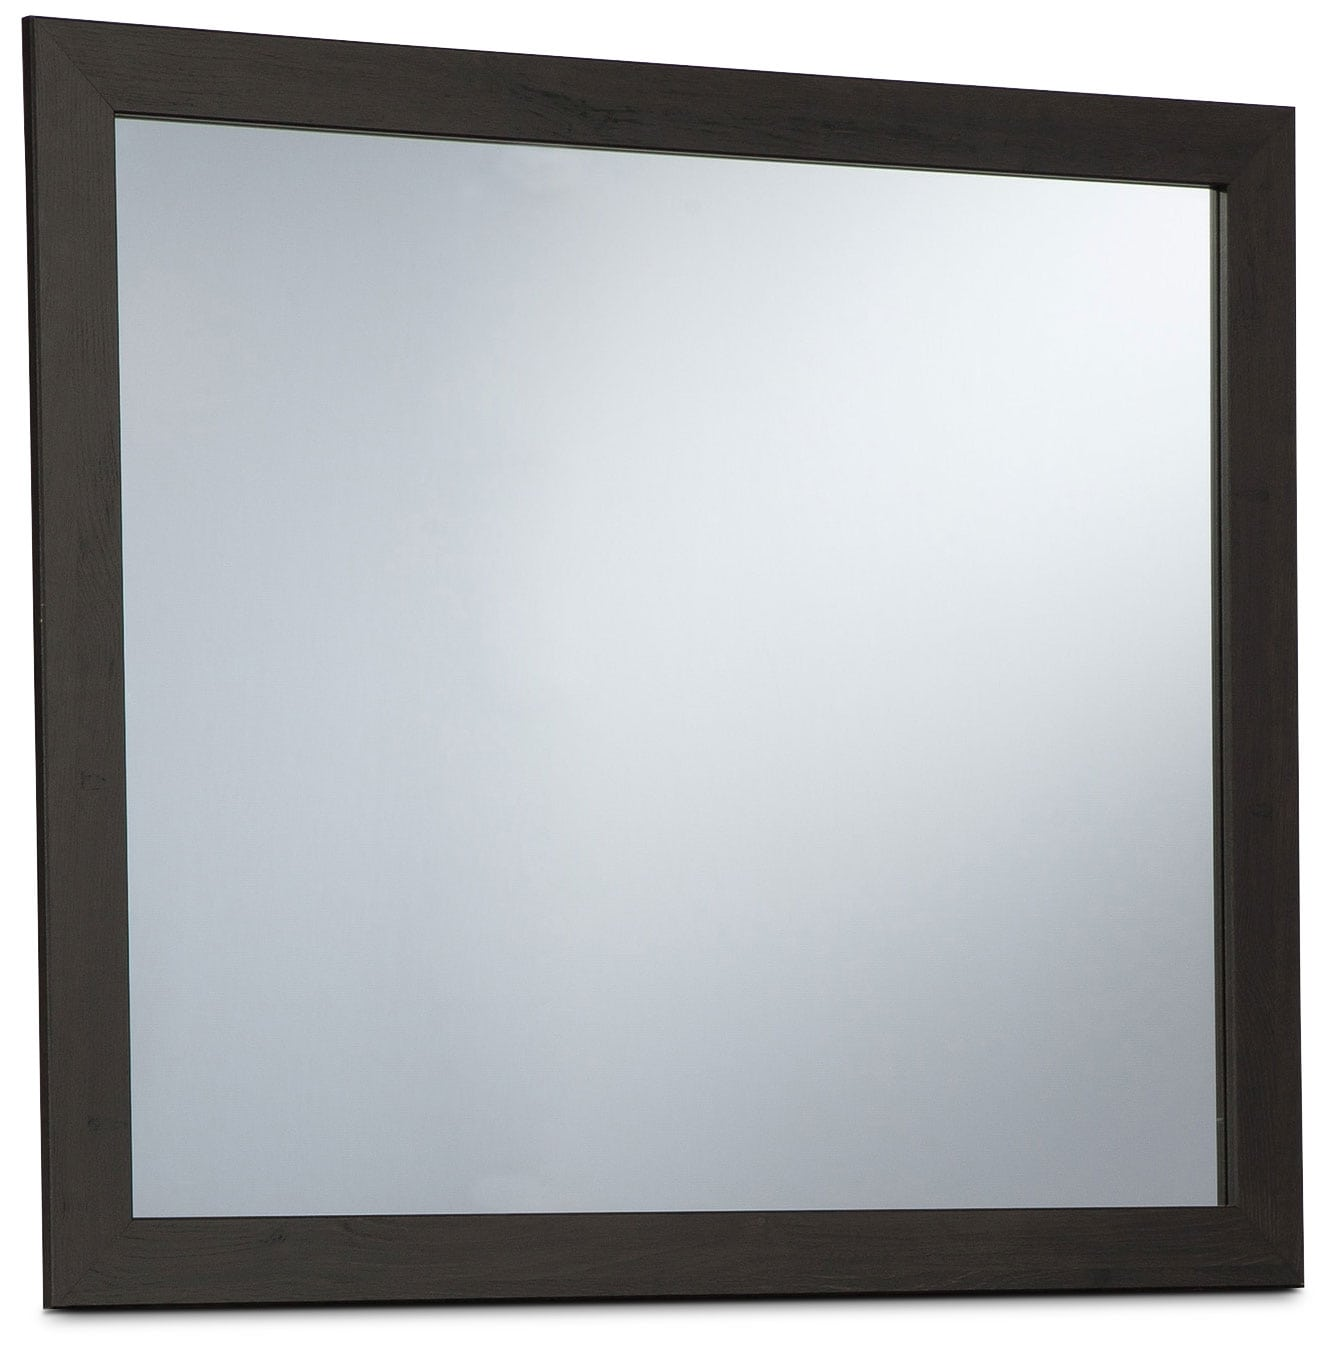 Bedroom Furniture - Harlinton Mirror